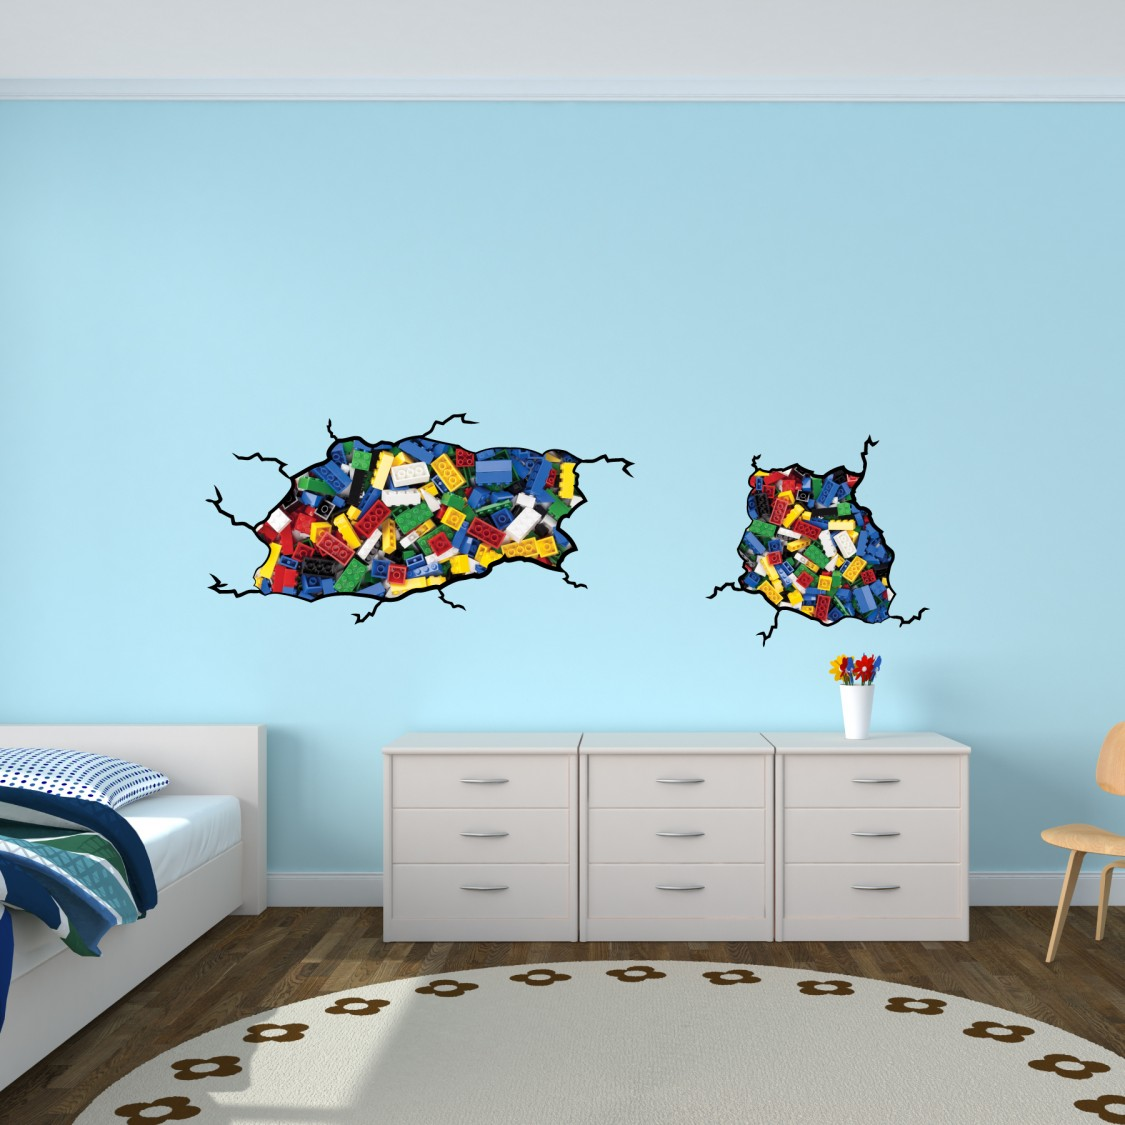 Kids room ideas 15 lego room decor style motivation for Kids room wall decor